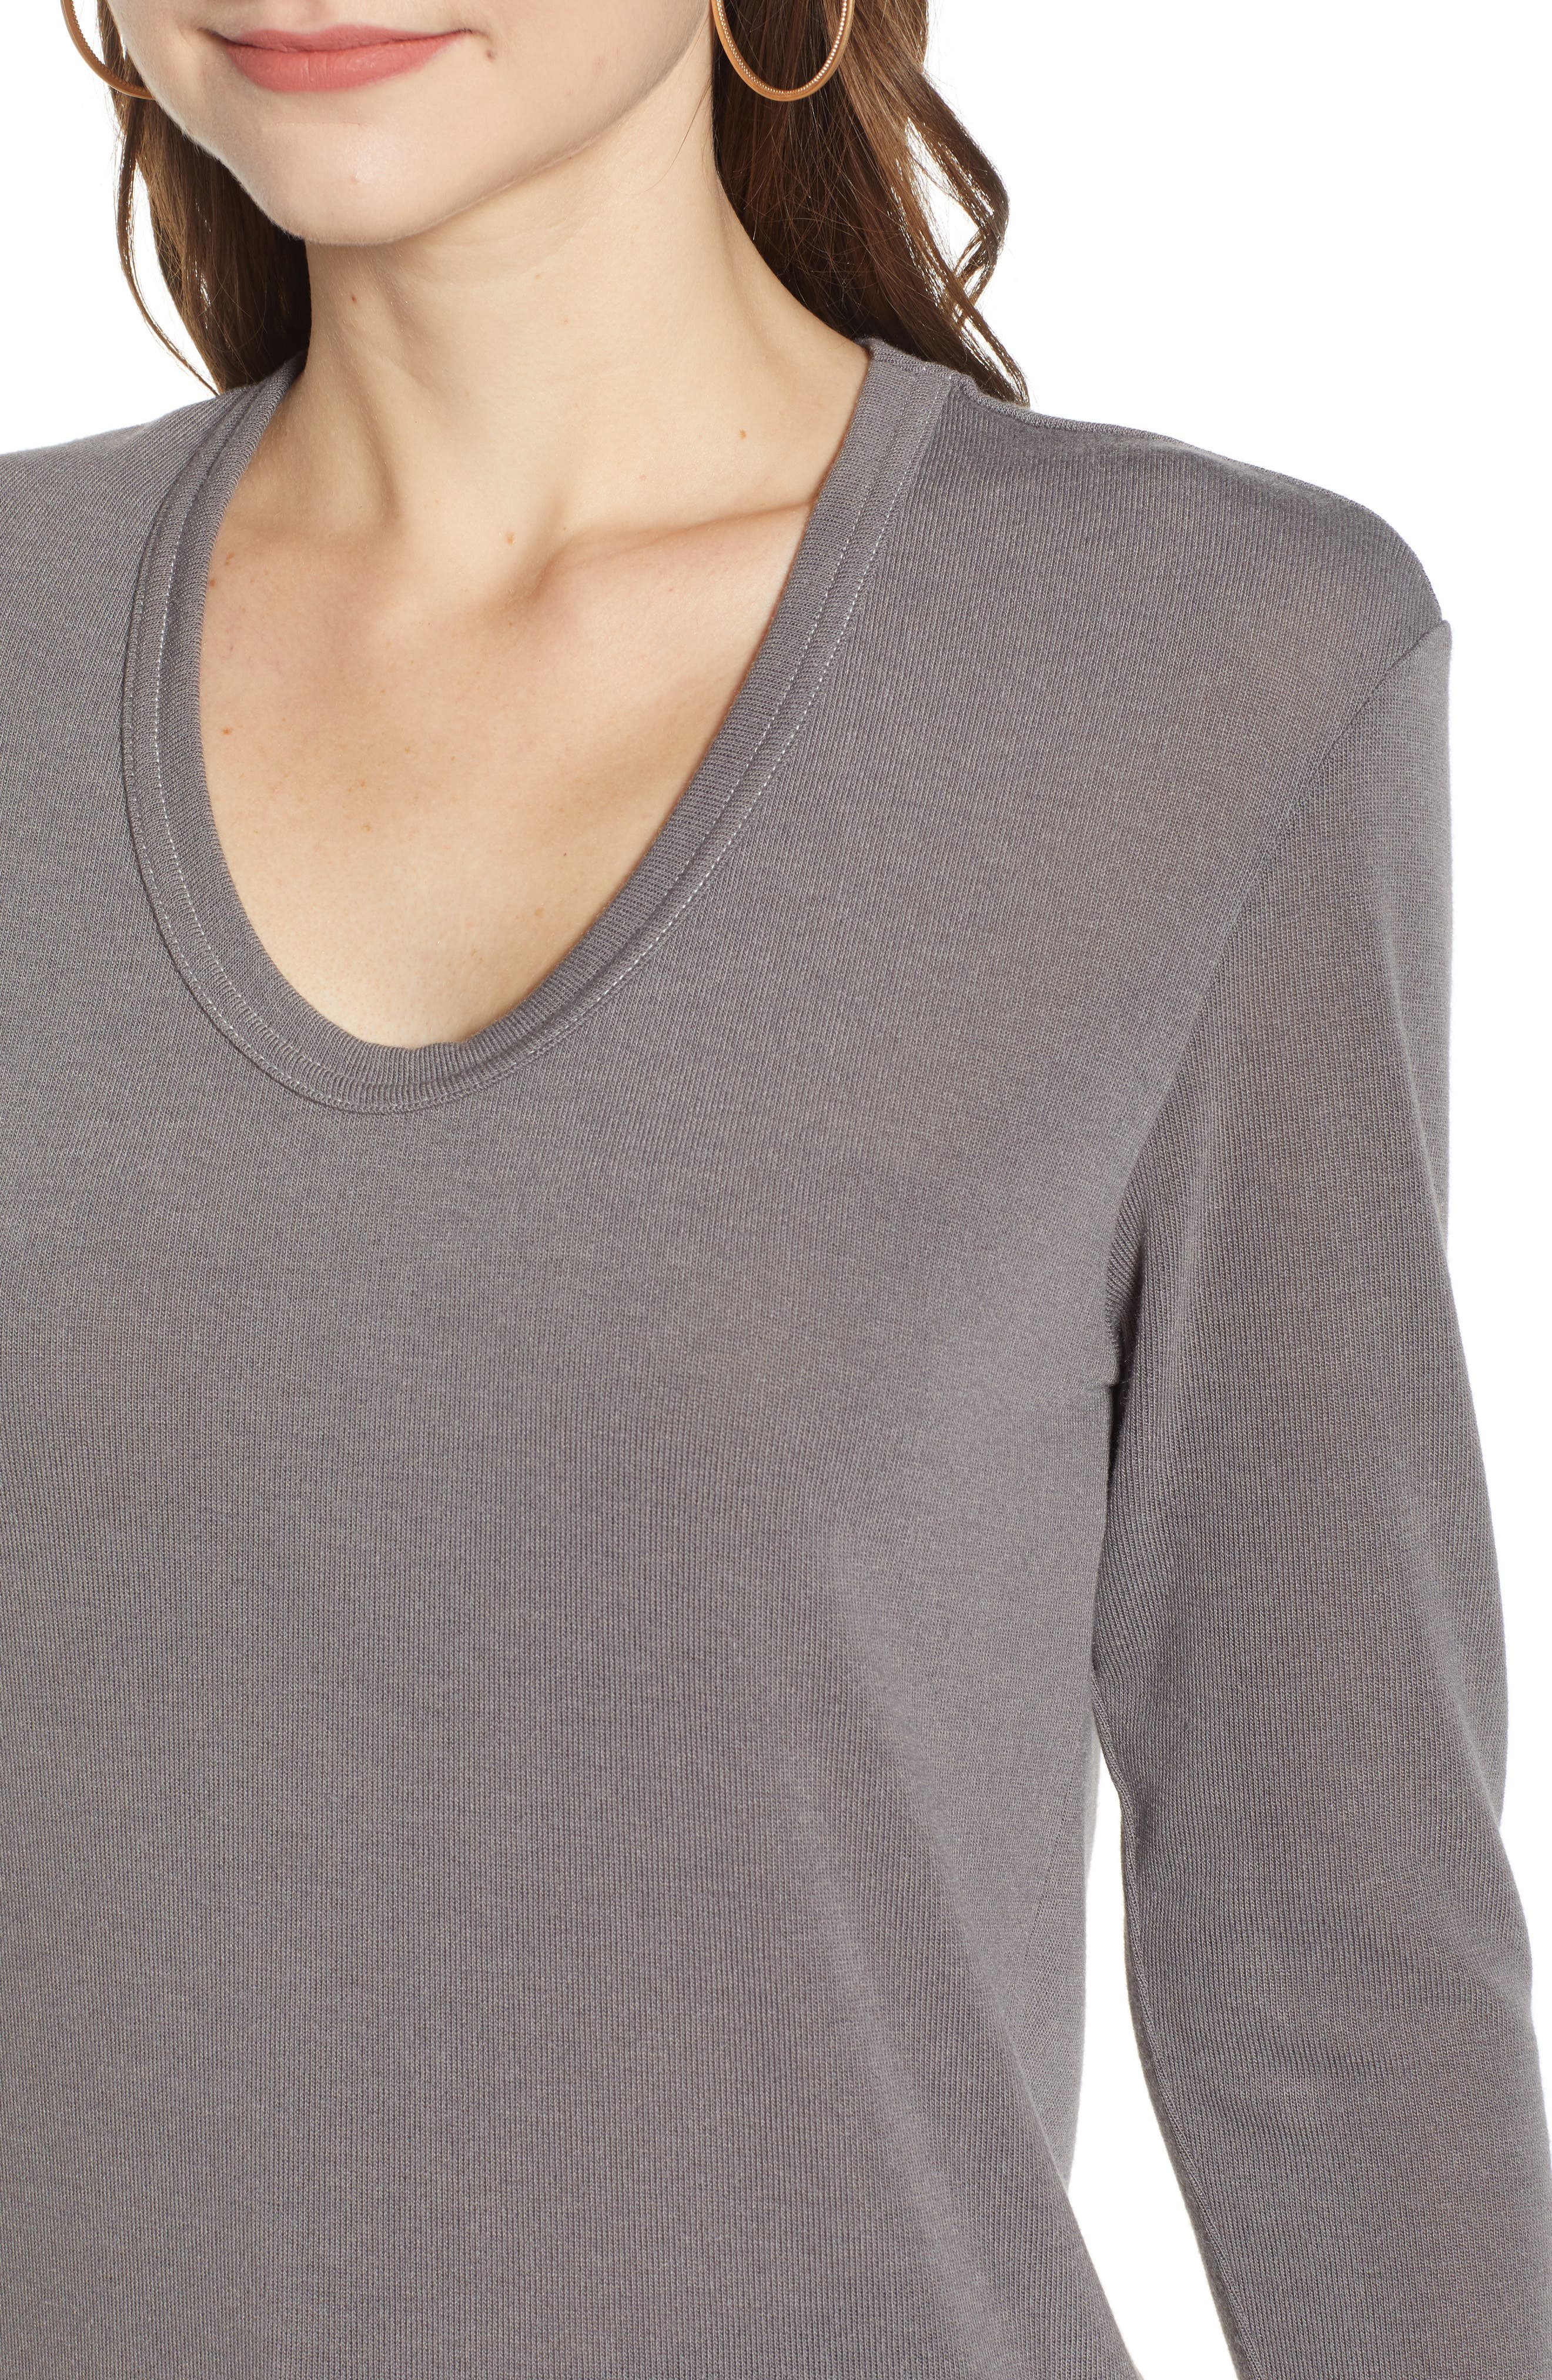 Ribbed U-Neck Top,                             Alternate thumbnail 4, color,                             GREY CHARCOAL